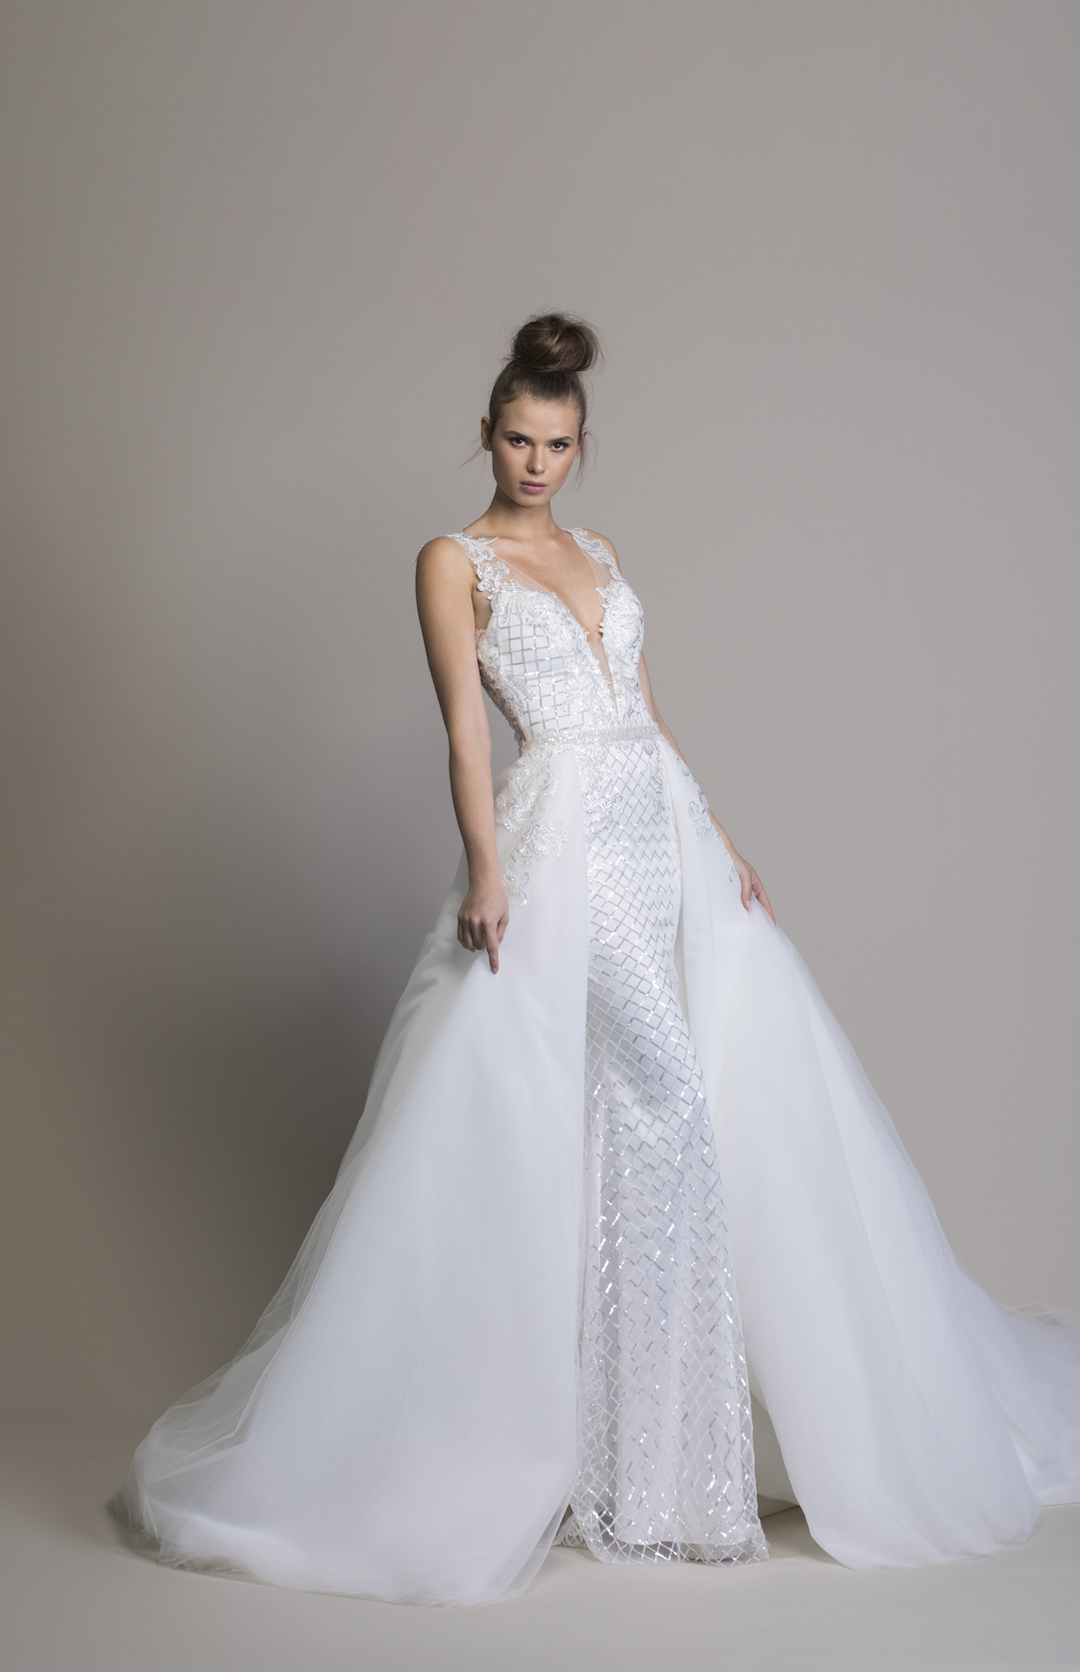 Pnina Tornai's new LOVE 2020 Collection is out! This is style 14754